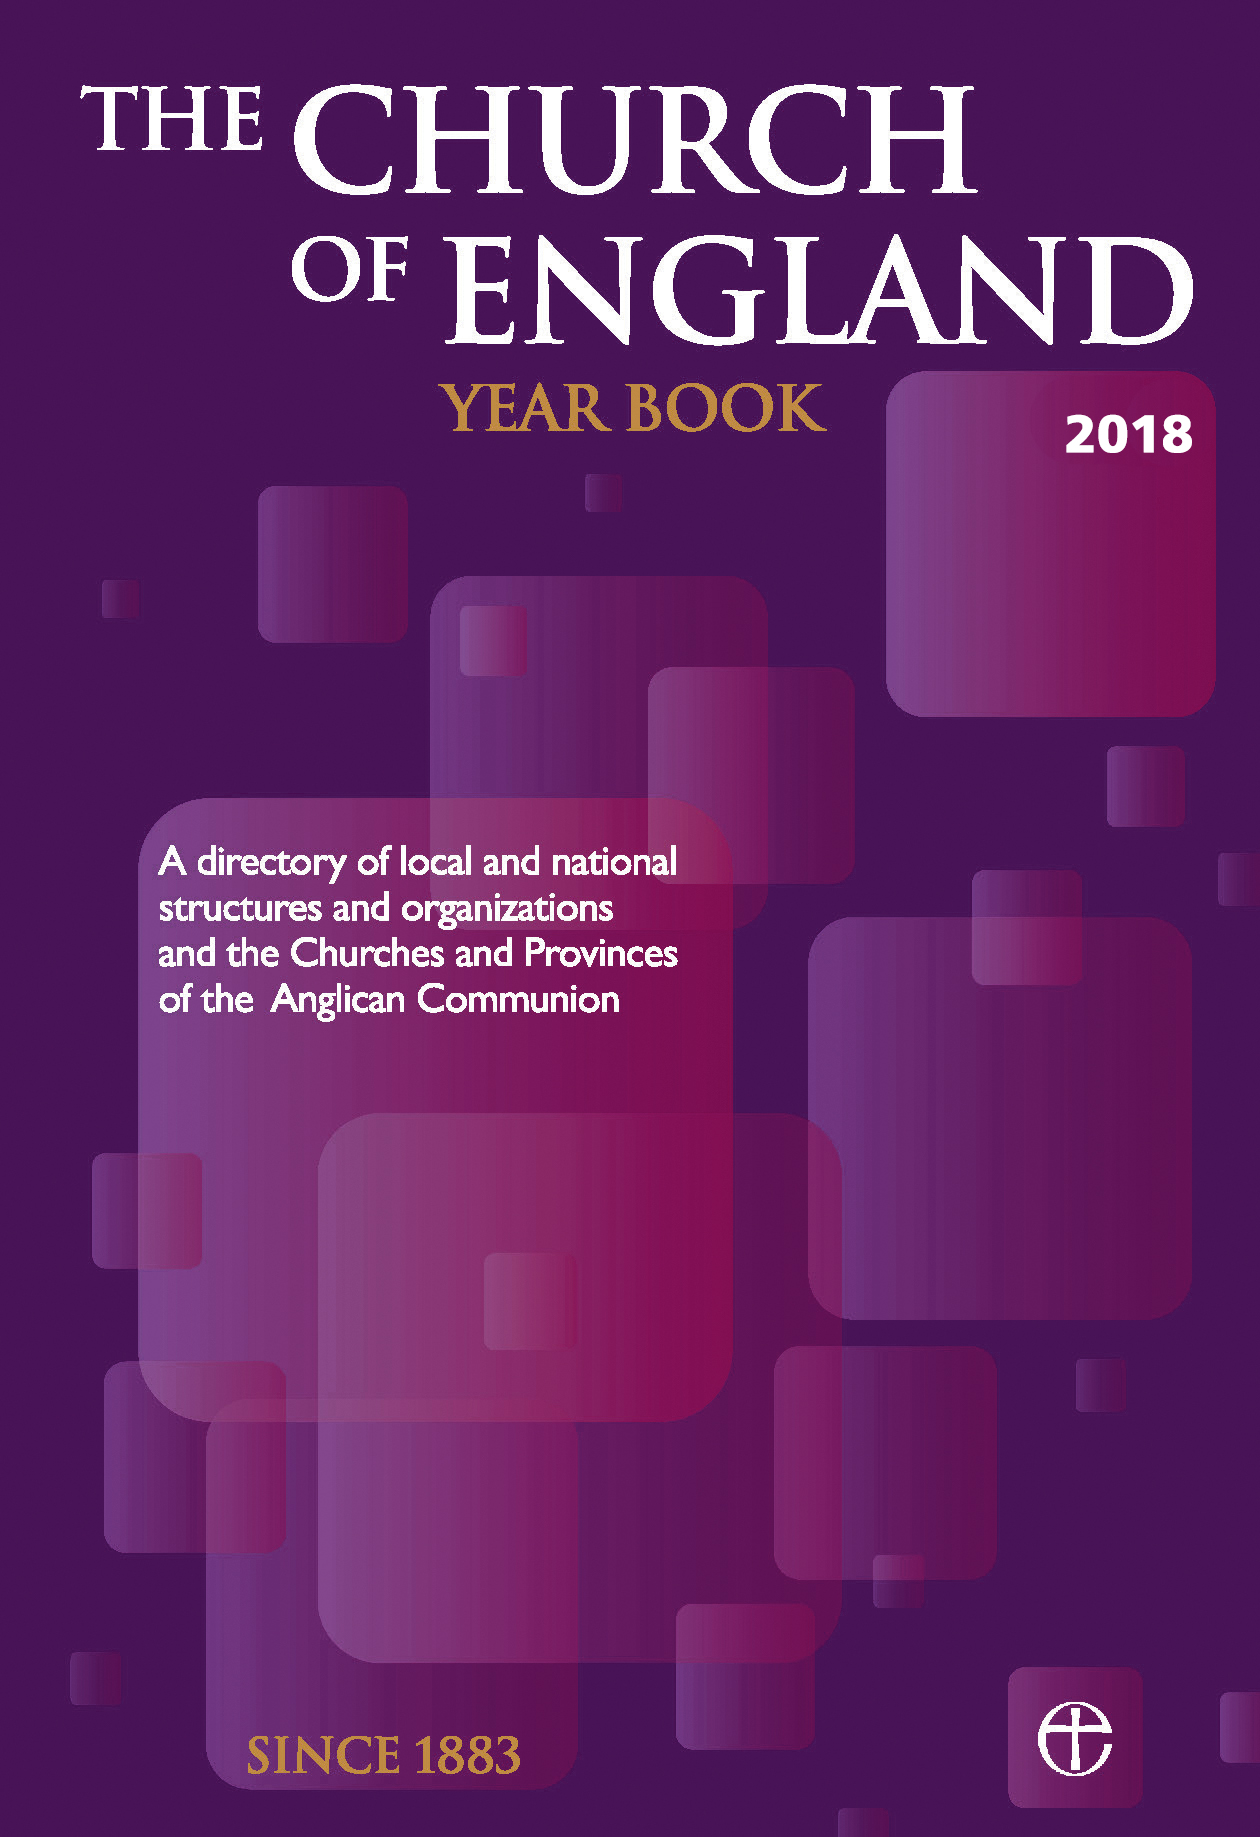 Church of England Year Book 2018